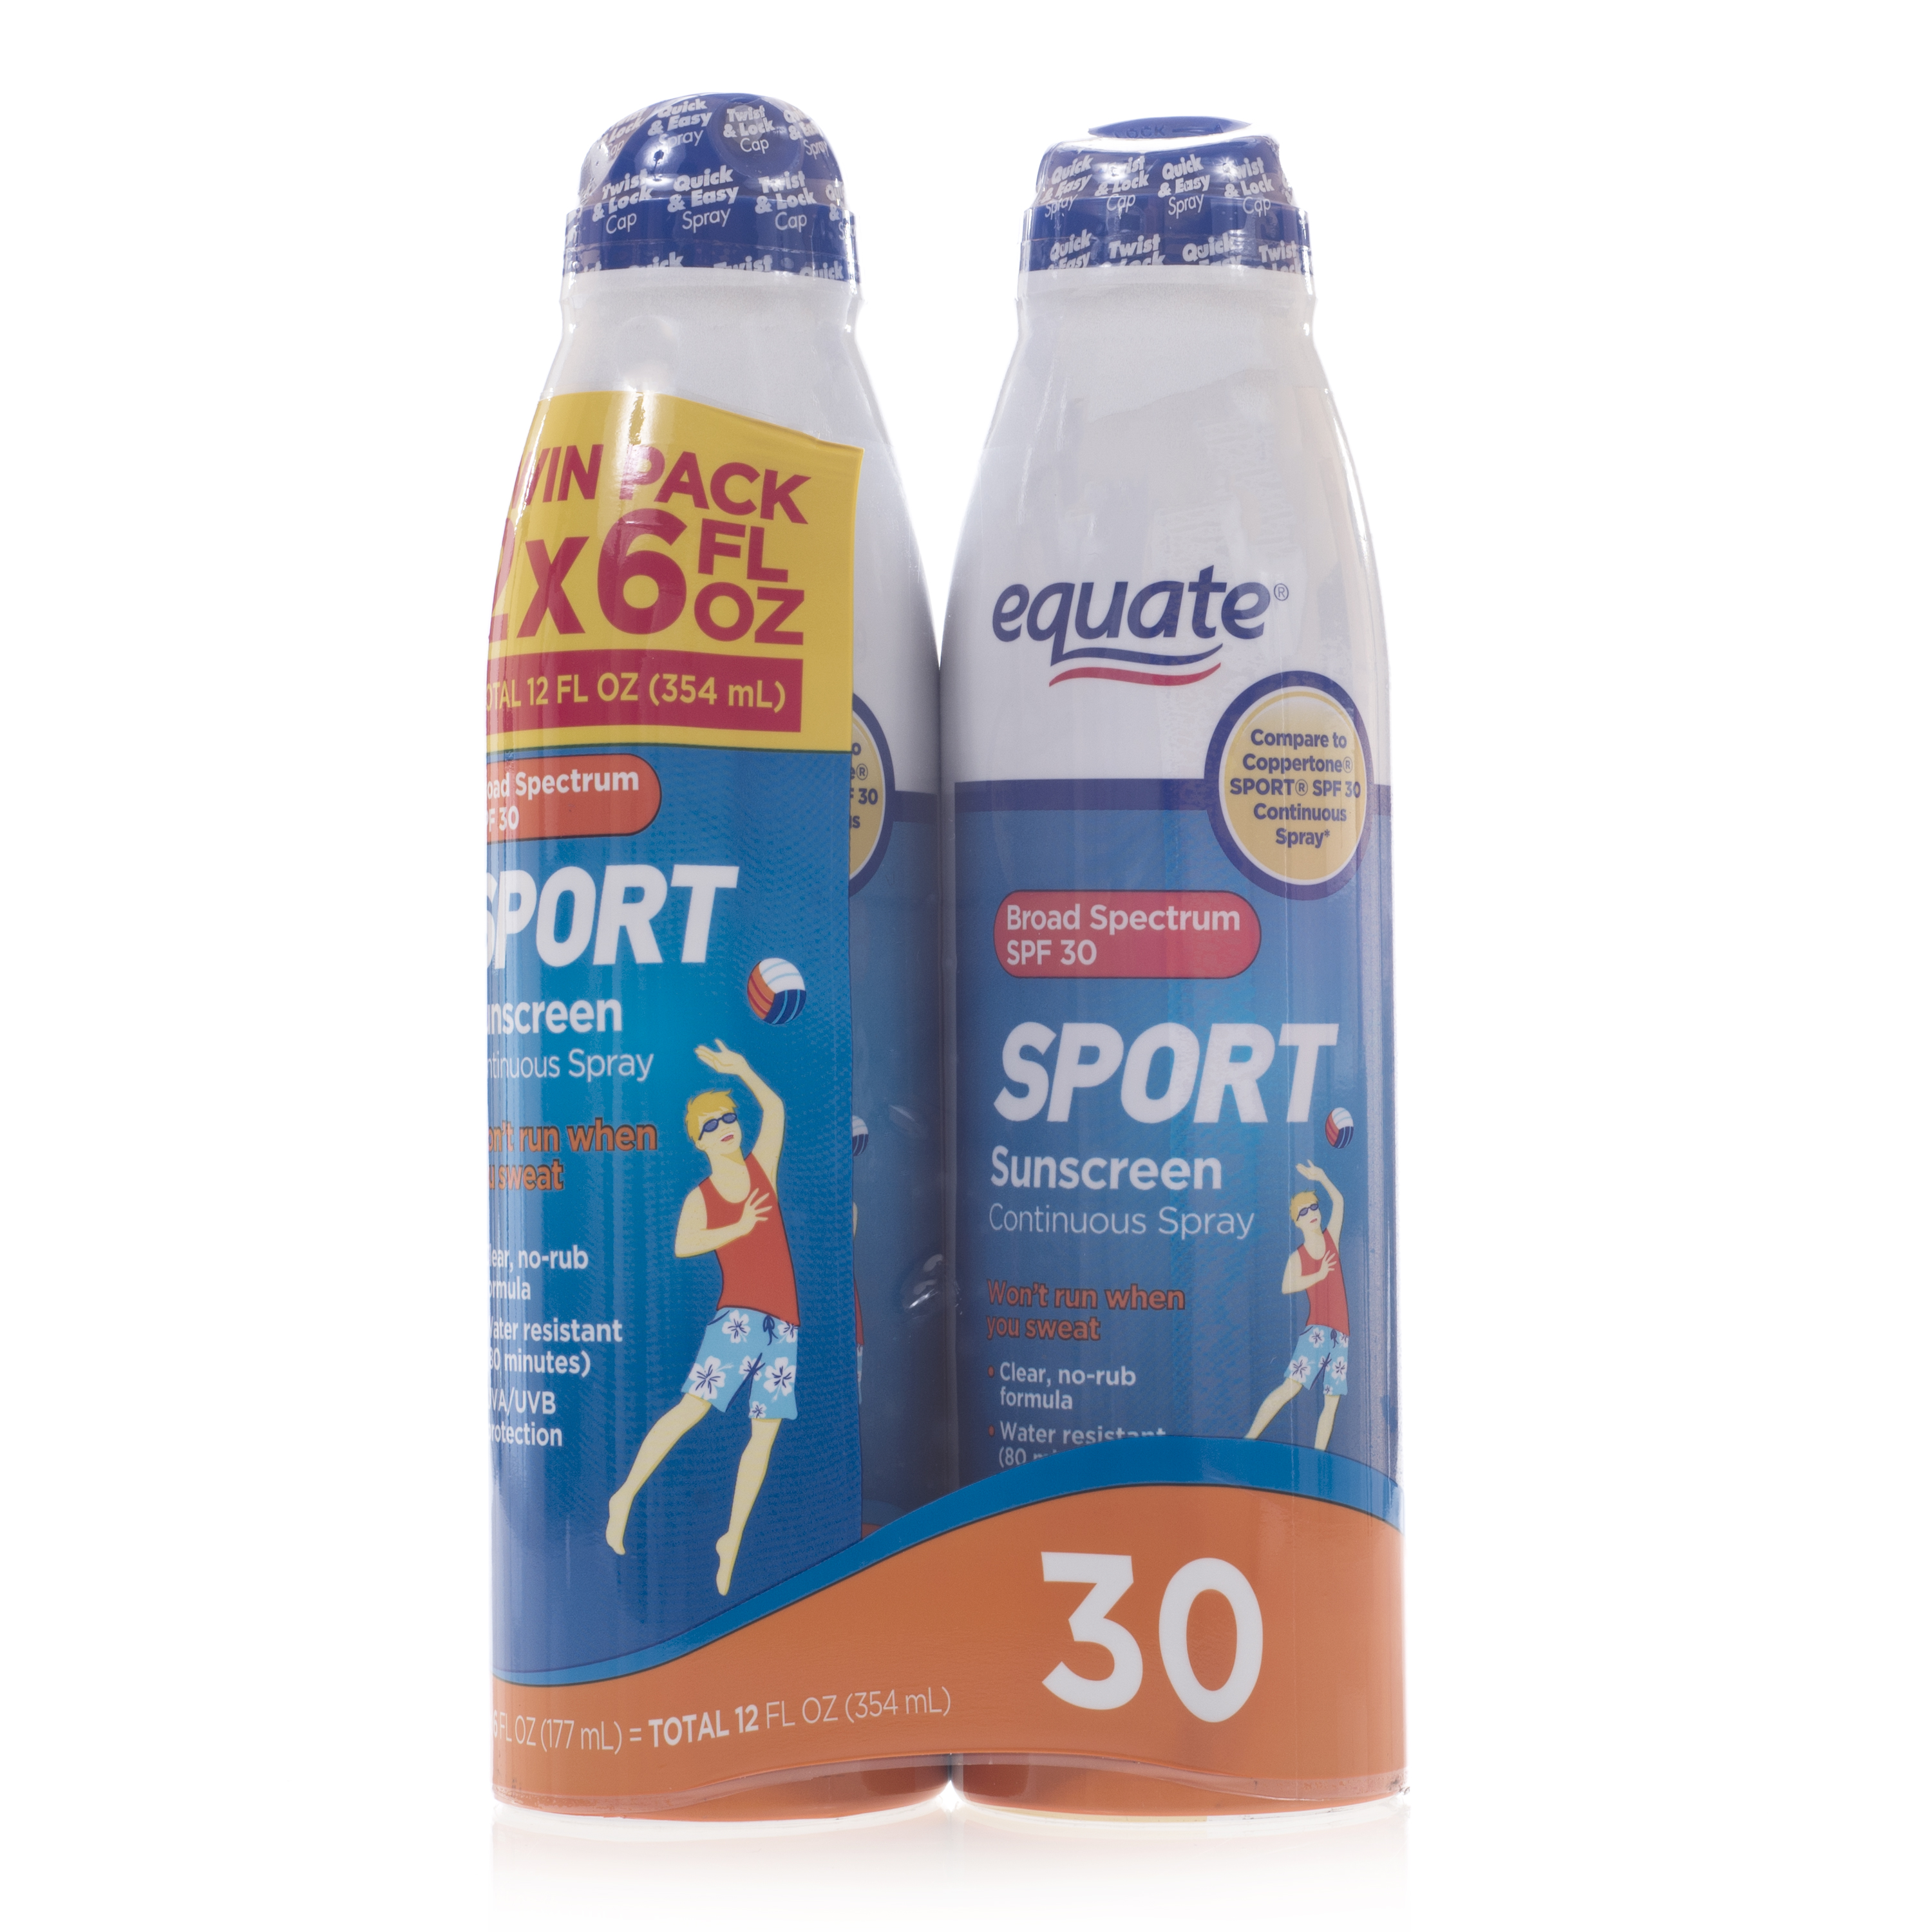 Equate Sport Continuous Spray Sunscreen, SPF 30 (Pack of 2)